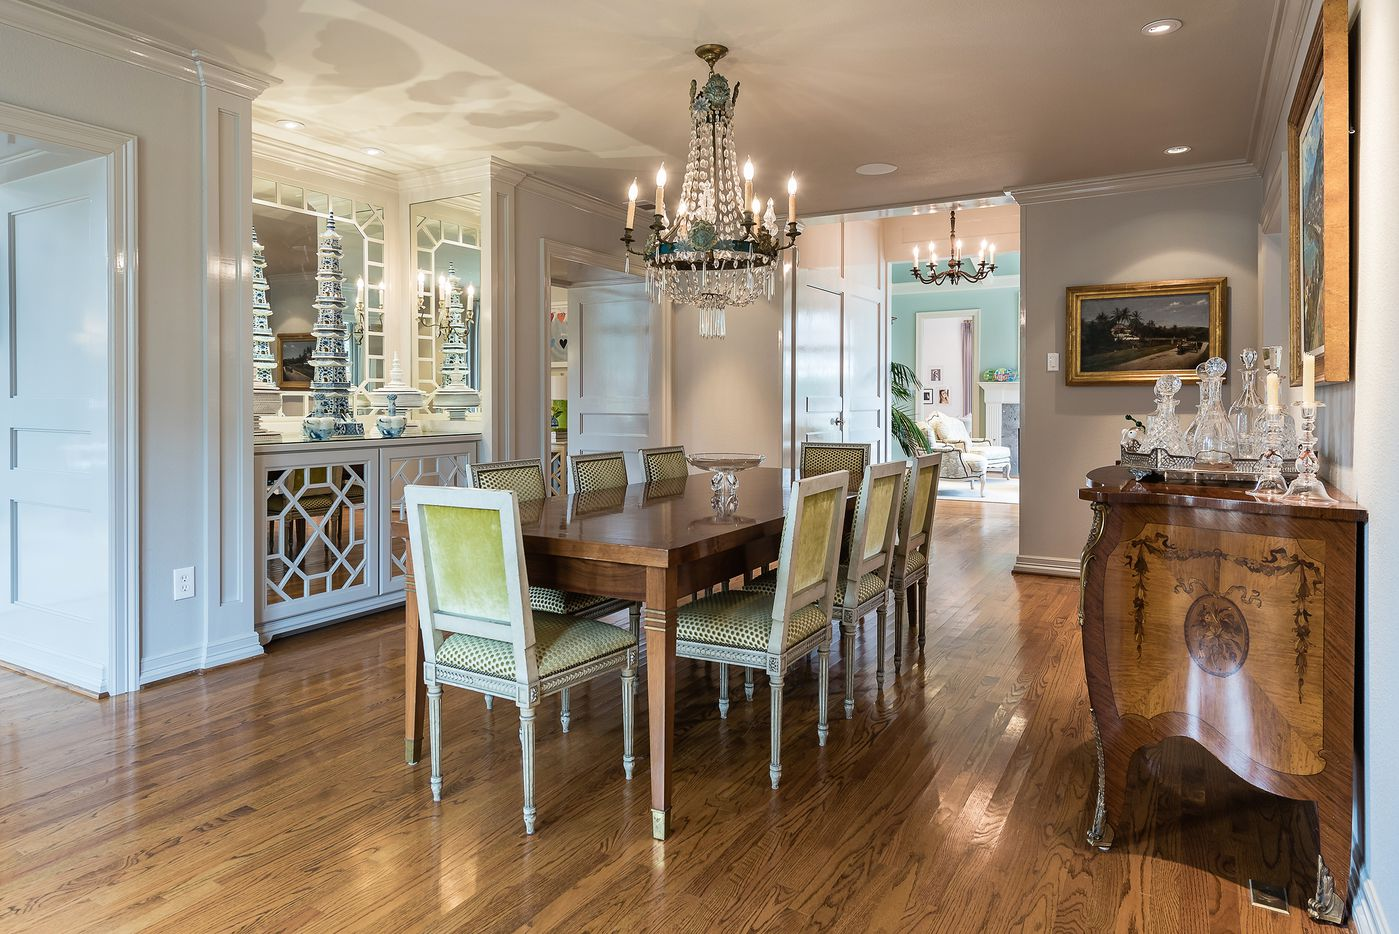 Dining room at 5845 Lupton Drive.